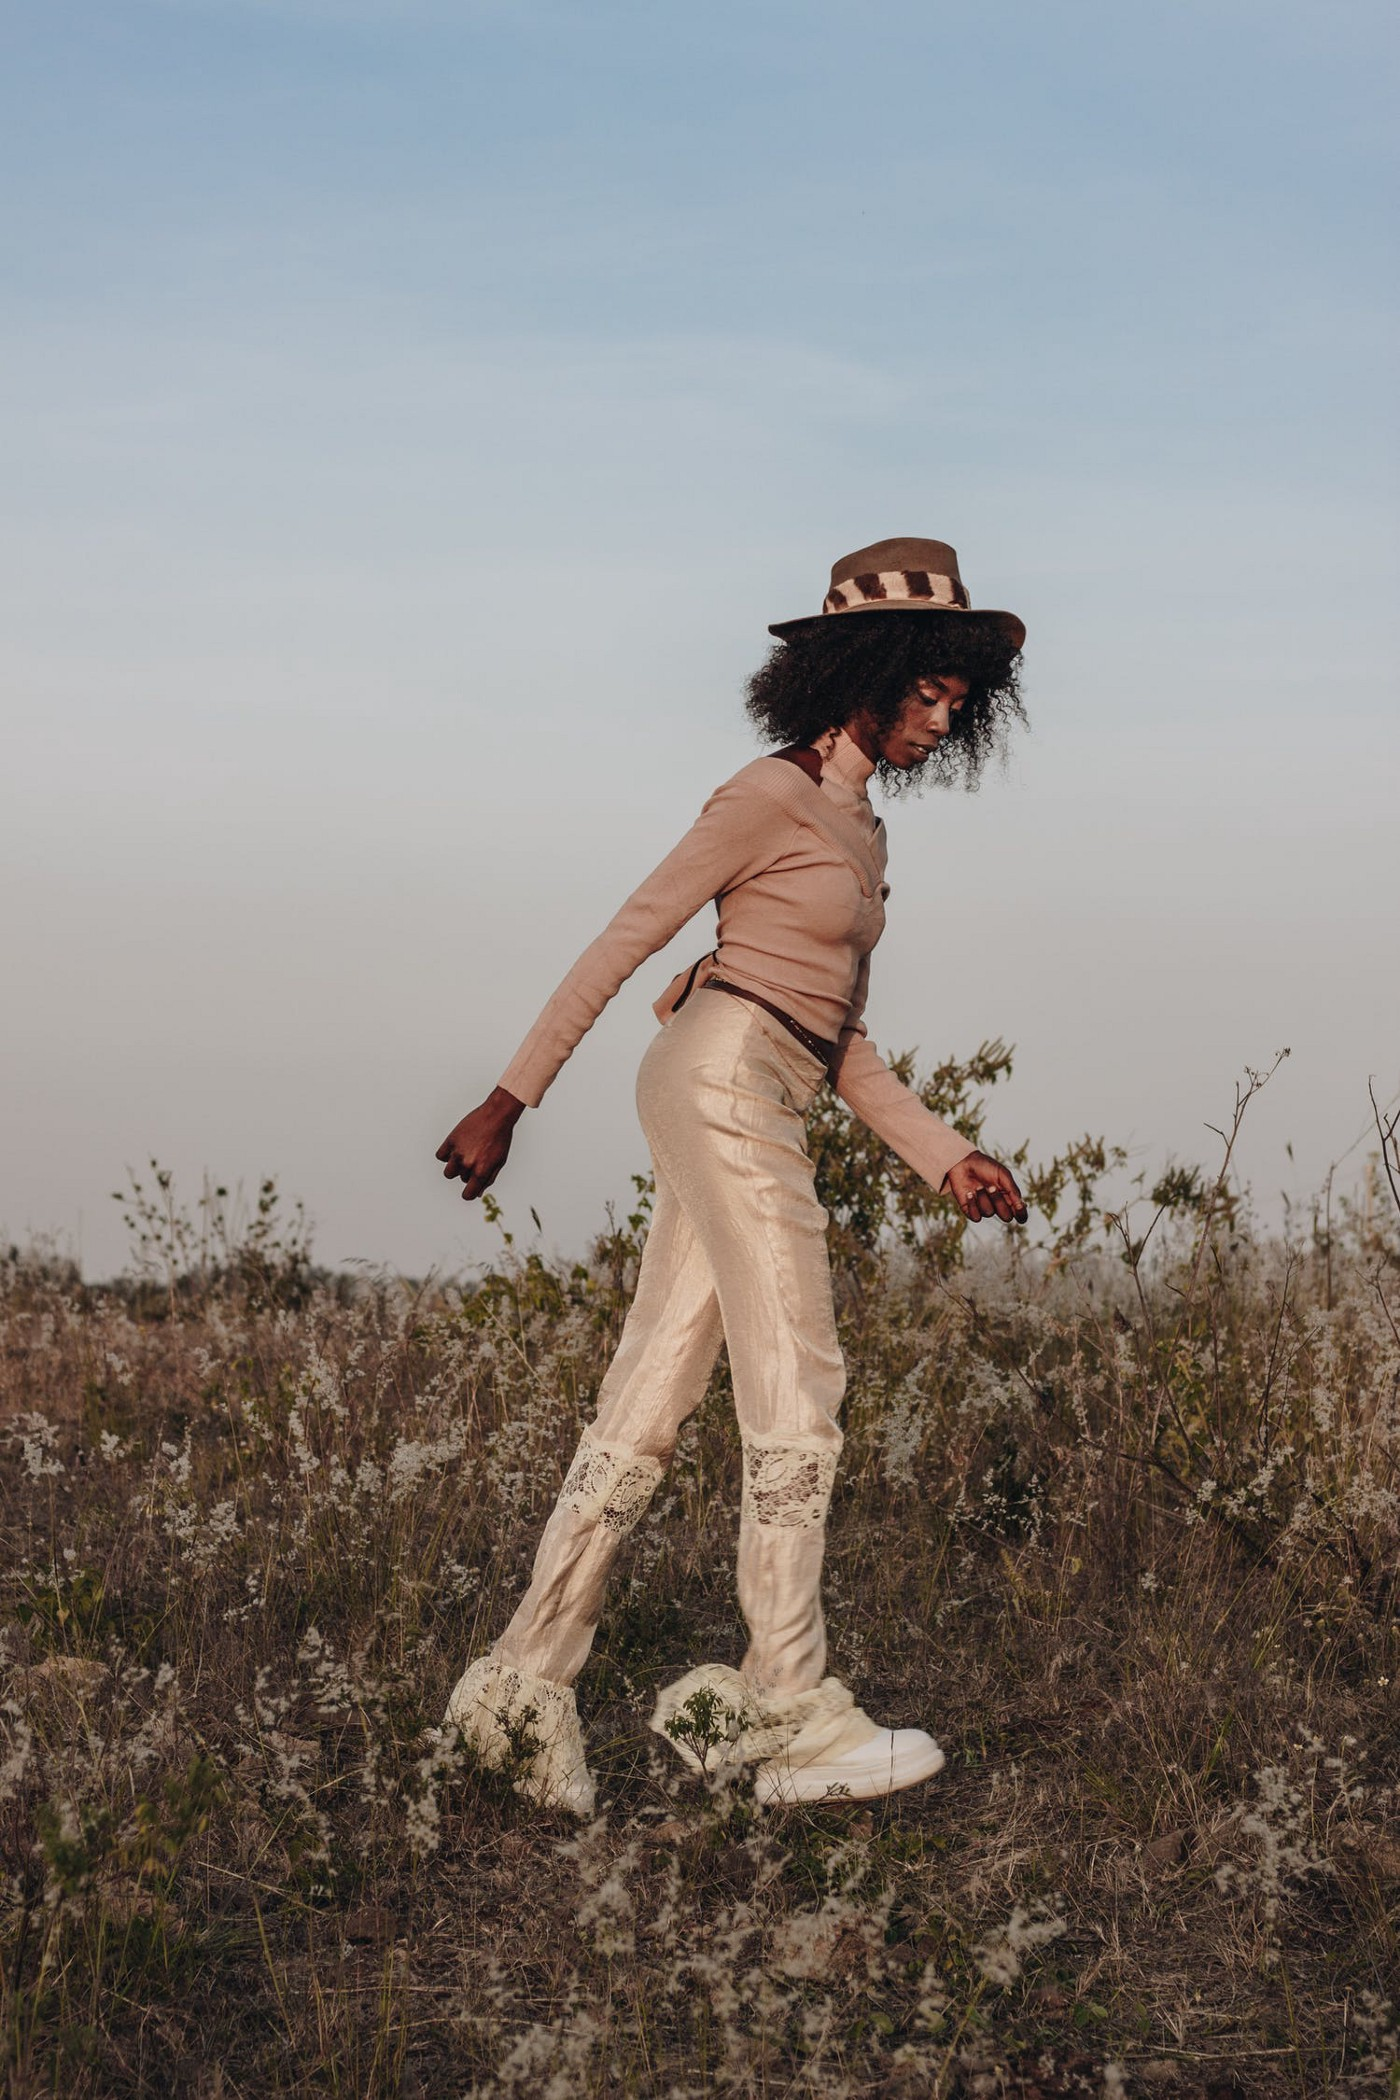 A fashionable woman walking in a serene and uphill place.